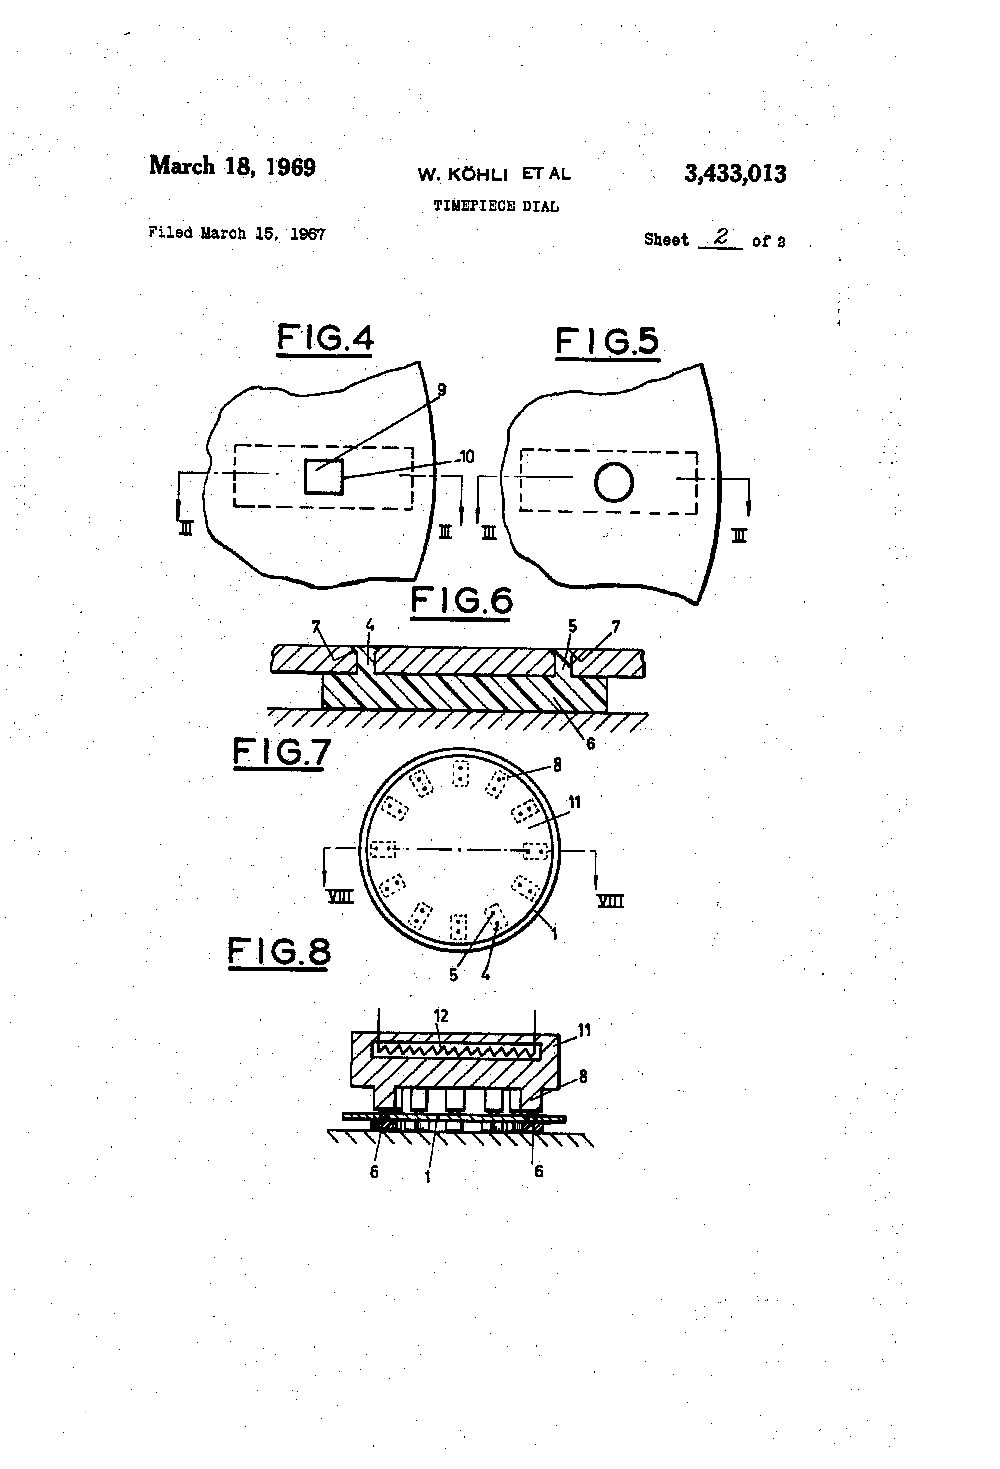 The Story about Rolex Prototypes of Dial Maker SINGER